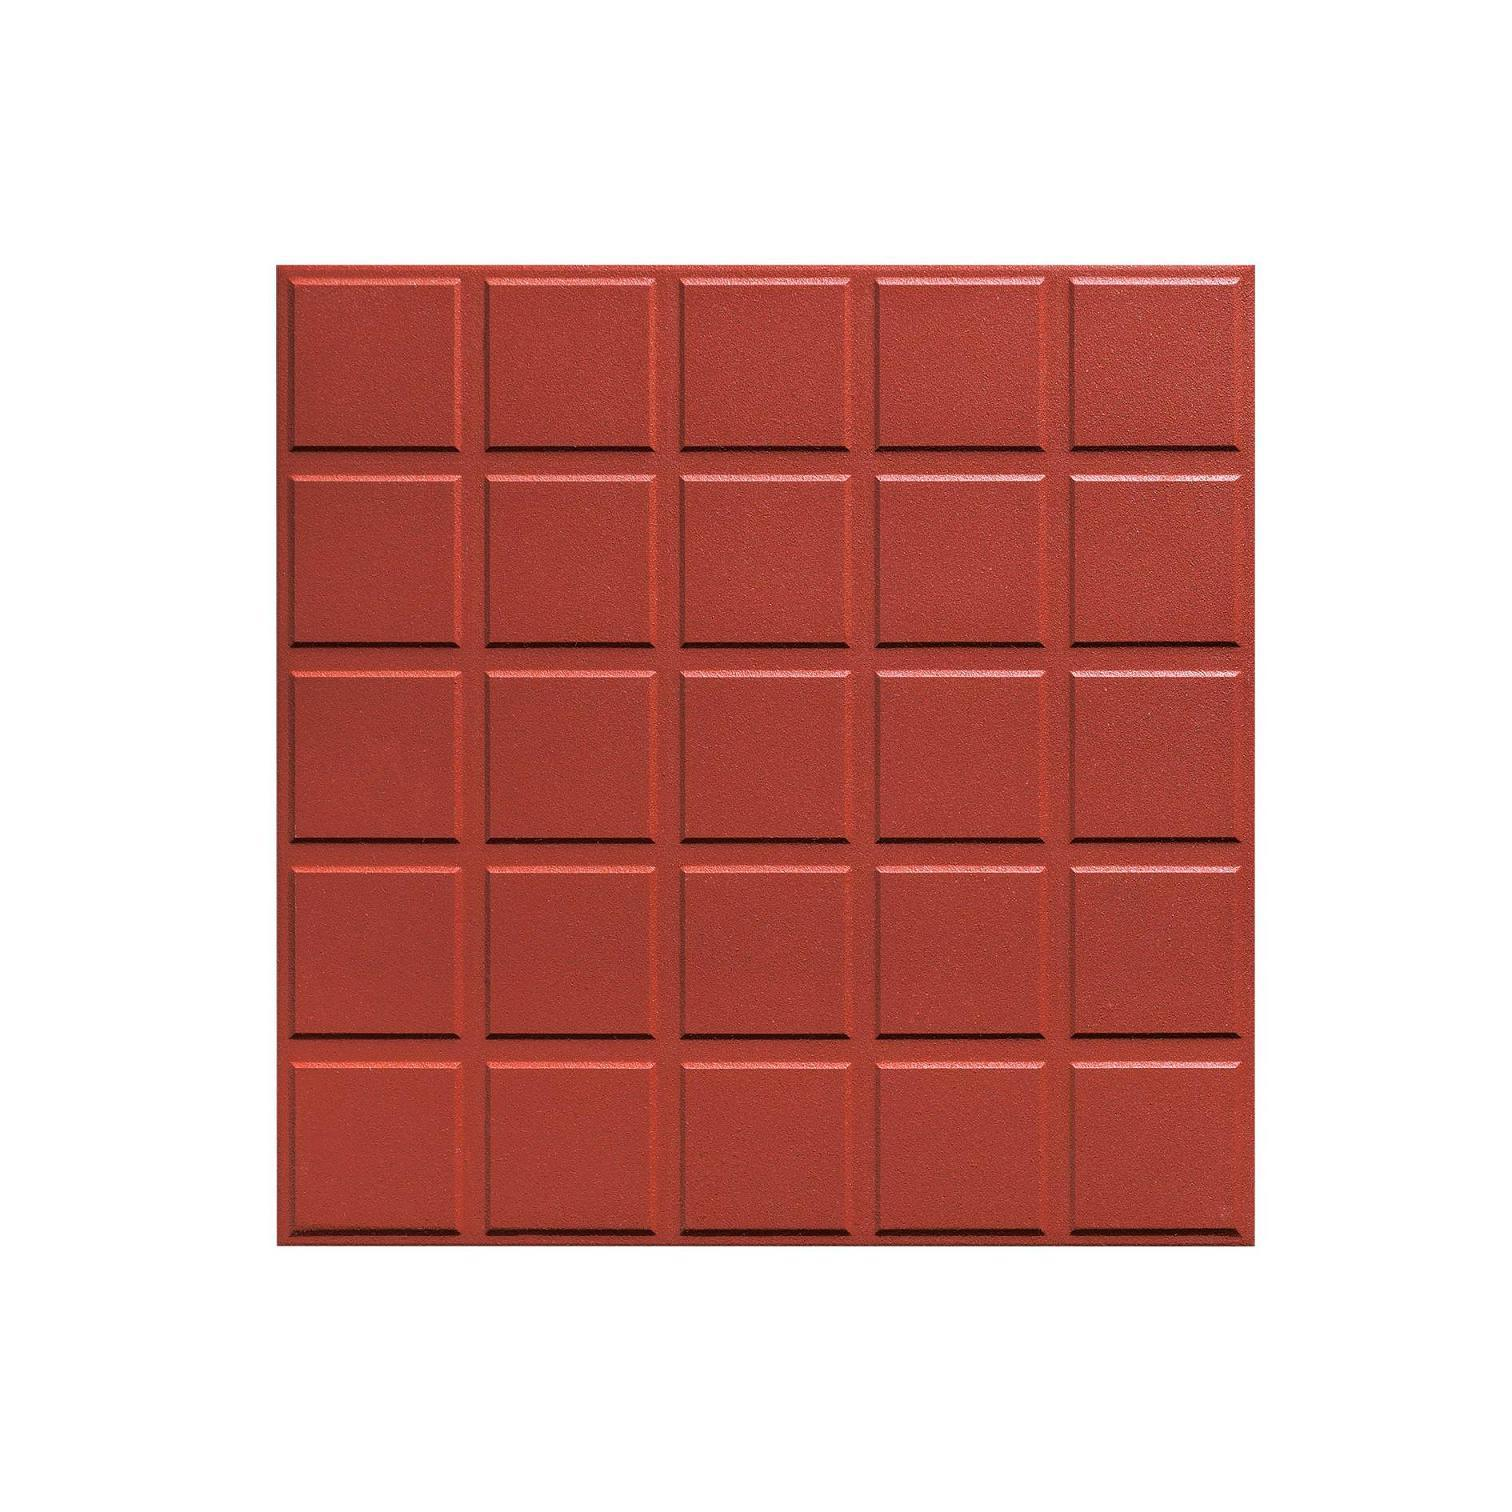 China Red Colour Outdoor Terracotta Clay Tile For Flooring